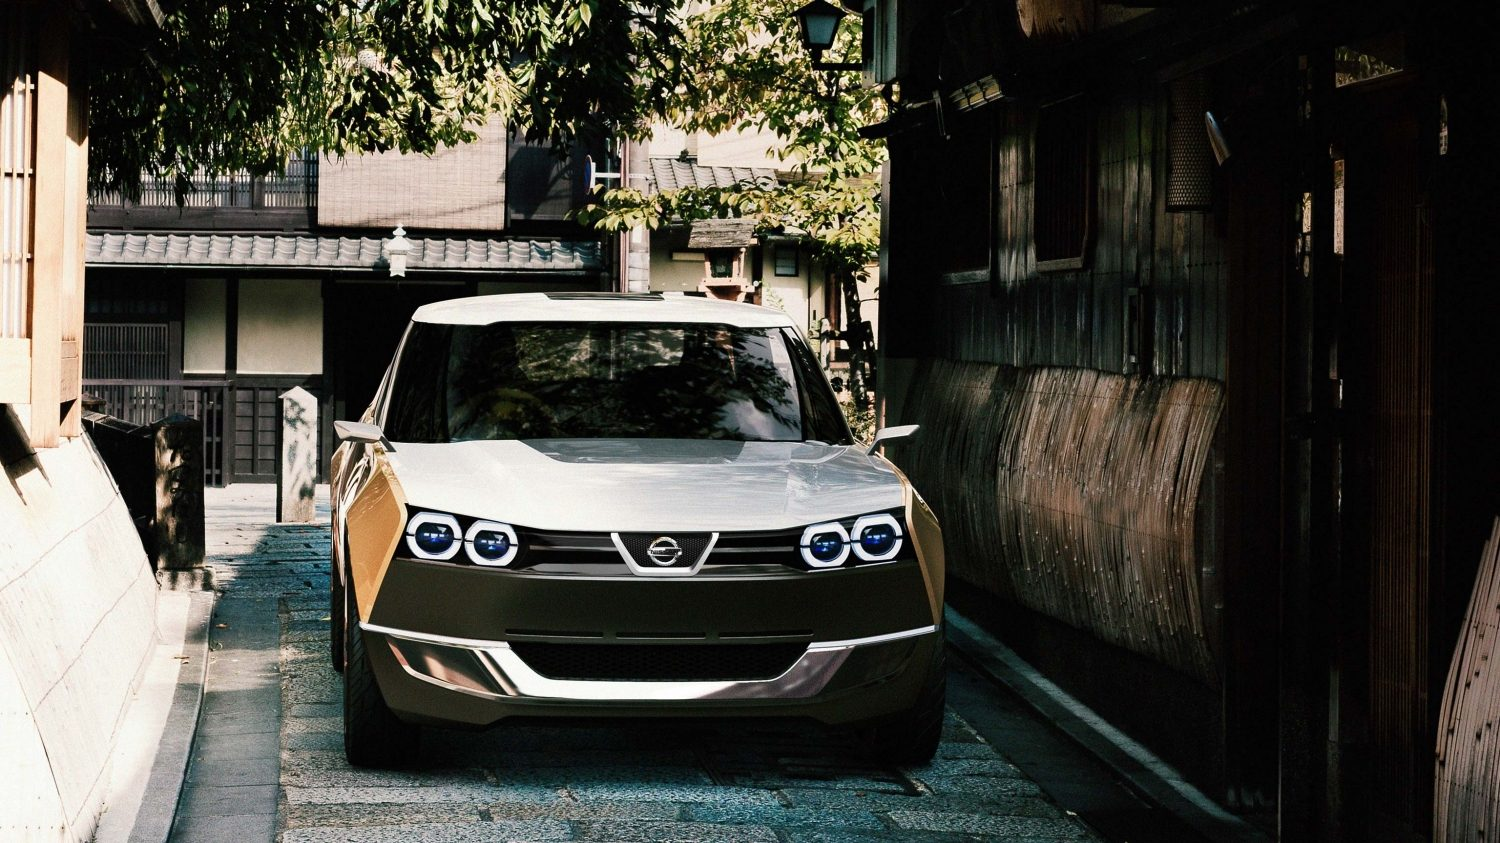 Nissan IDX Freeflow Concept. Gallery straight front city alley.